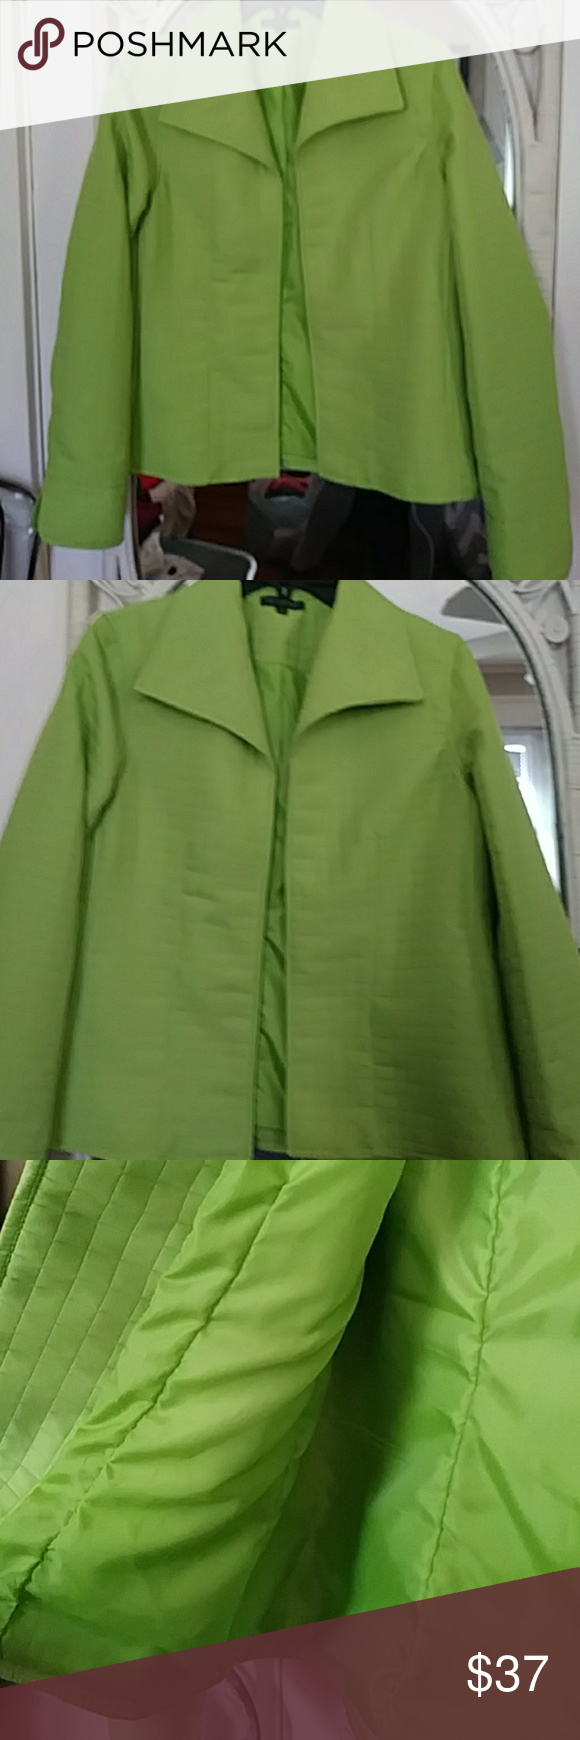 "💚For Cynthia...quilted open blazer💚👕👡 By Cynthia Rowley lightweight quilted blazer. Lime green and gorgeous. Size med. Excellent condition. Ready to wear. Fully lined 14"" under arm to bottom. 19.5"" flat pit to pit For CYNTHIA Jackets & Coats Blazers"